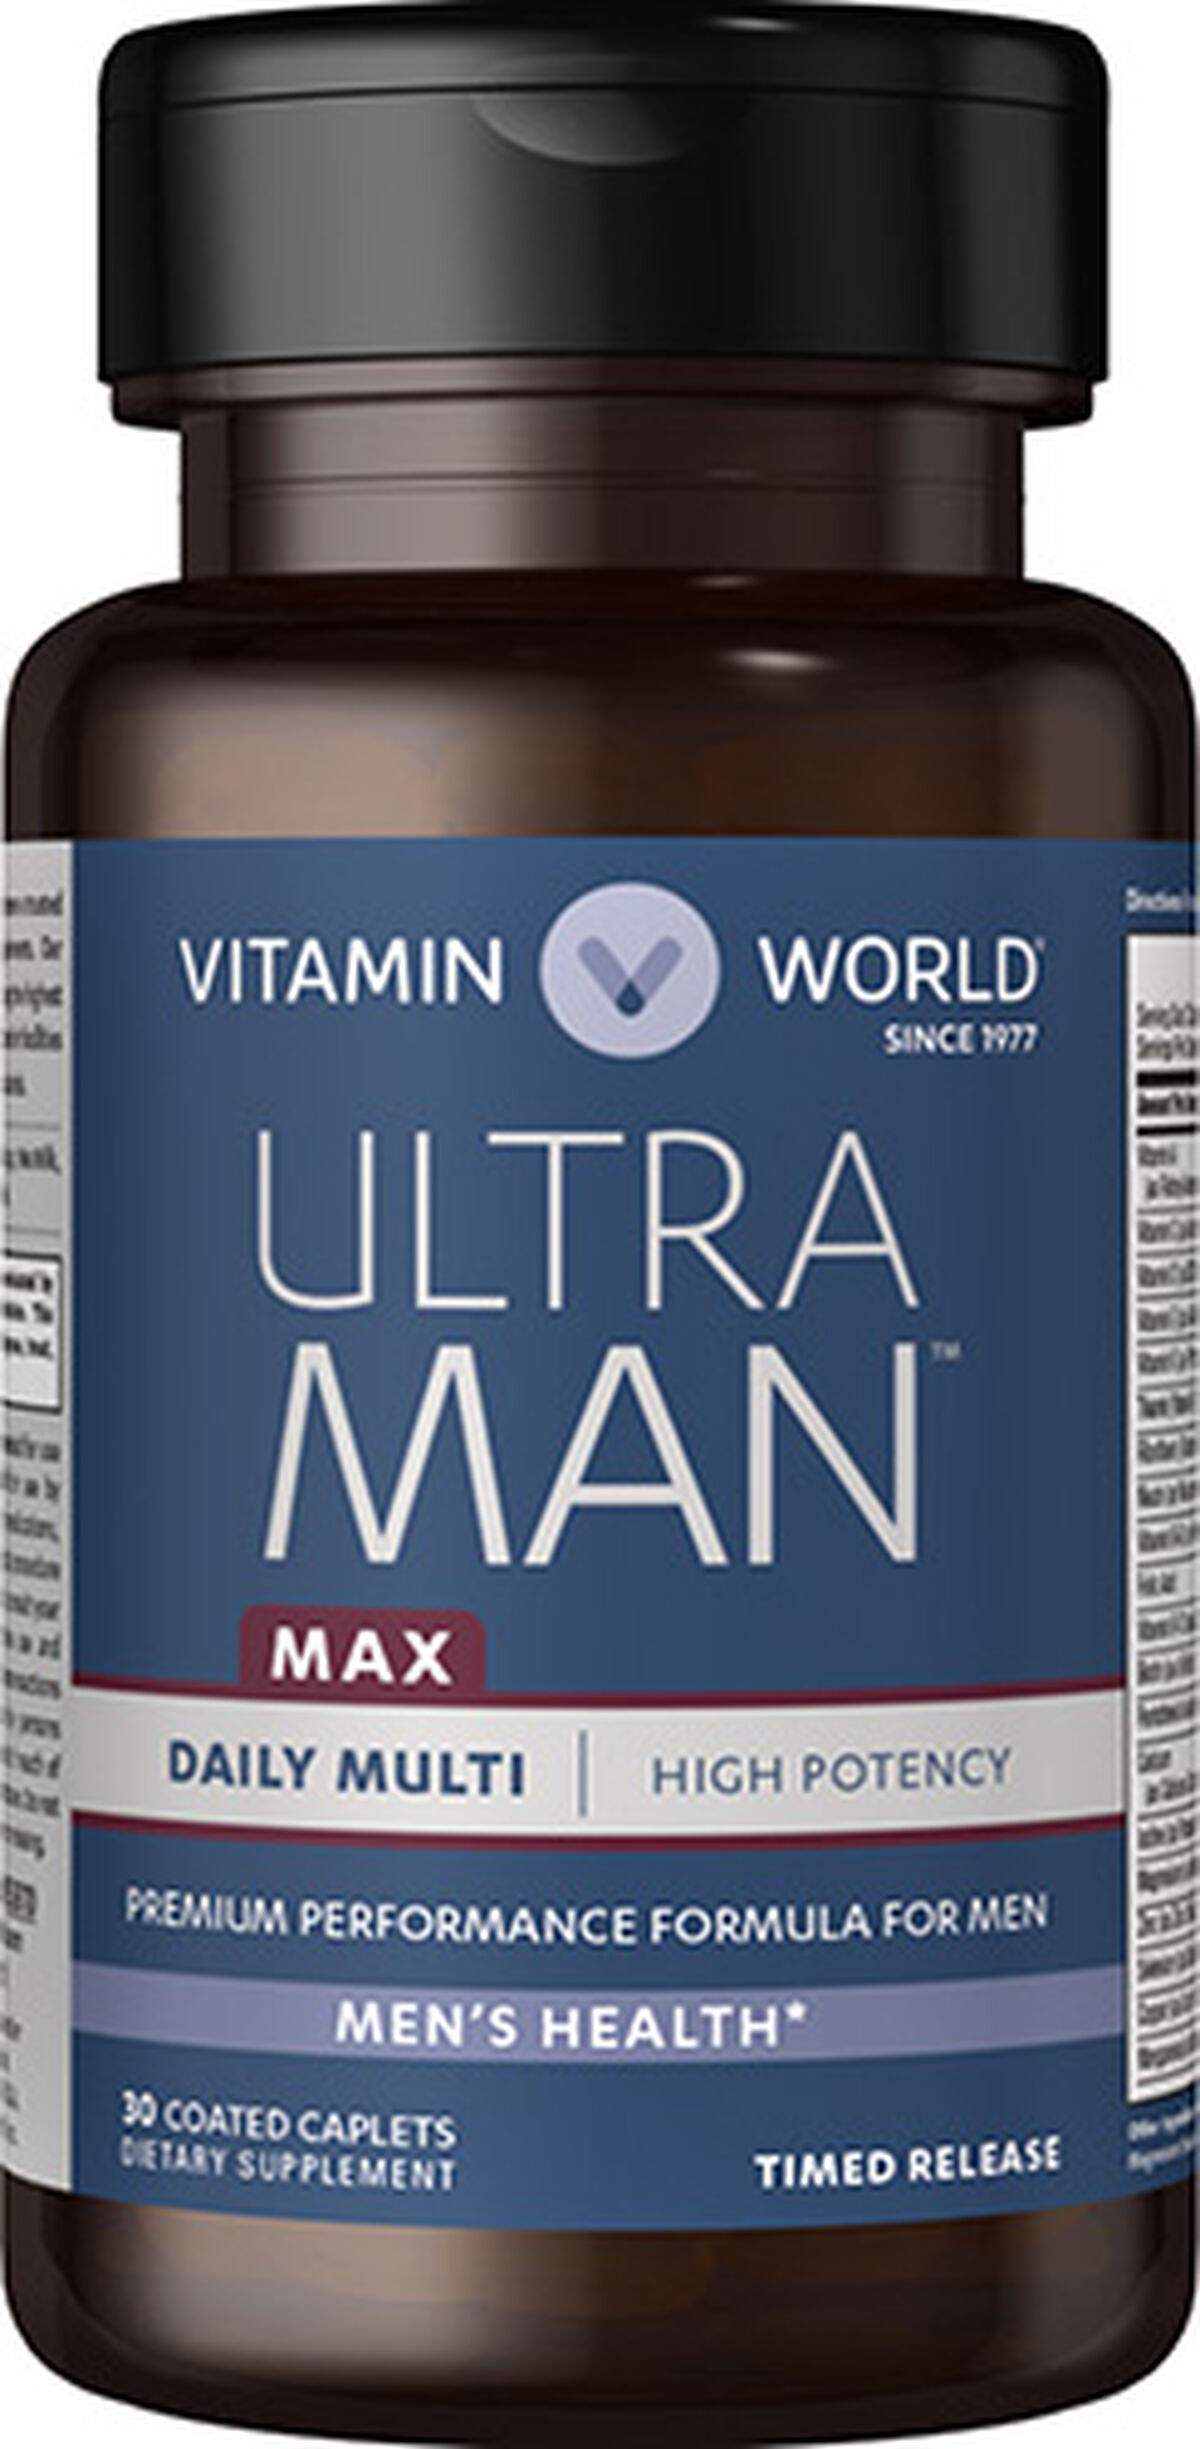 Ultra Man™ Max multivitamins at Vitamin World | Tuggl